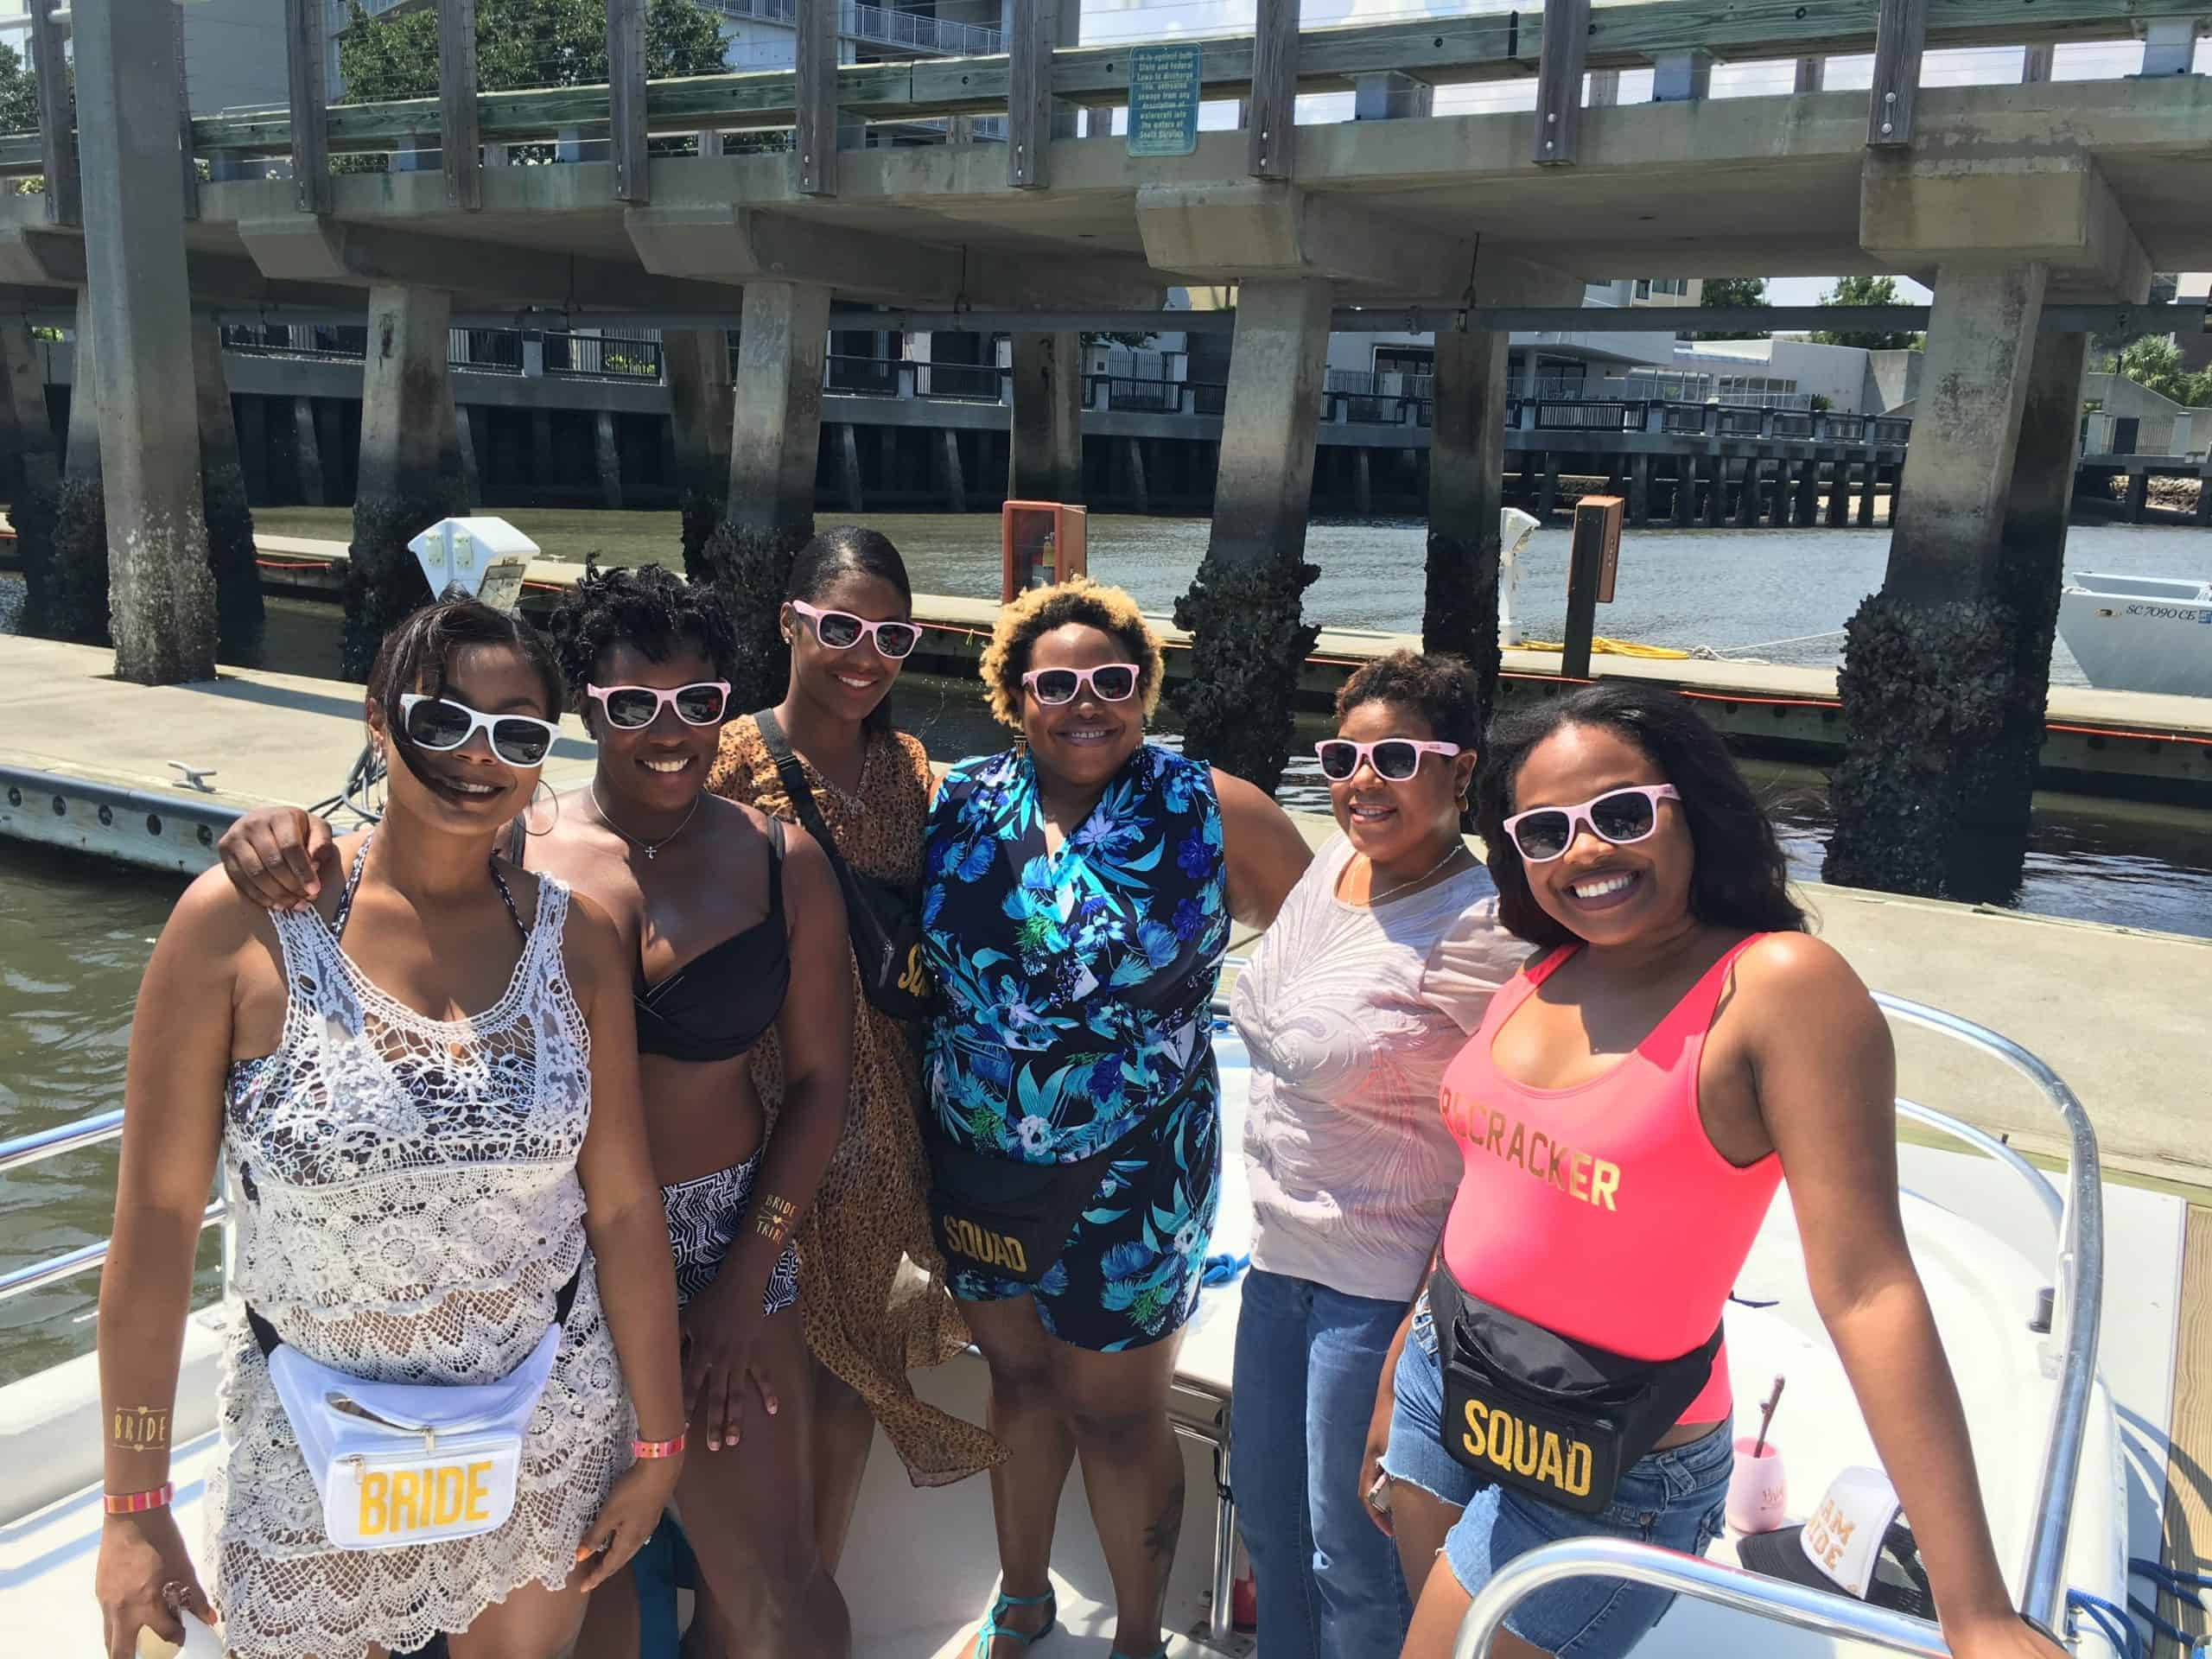 Bachelorette party pictured on the docked boat. Charleston bachelorette party boat